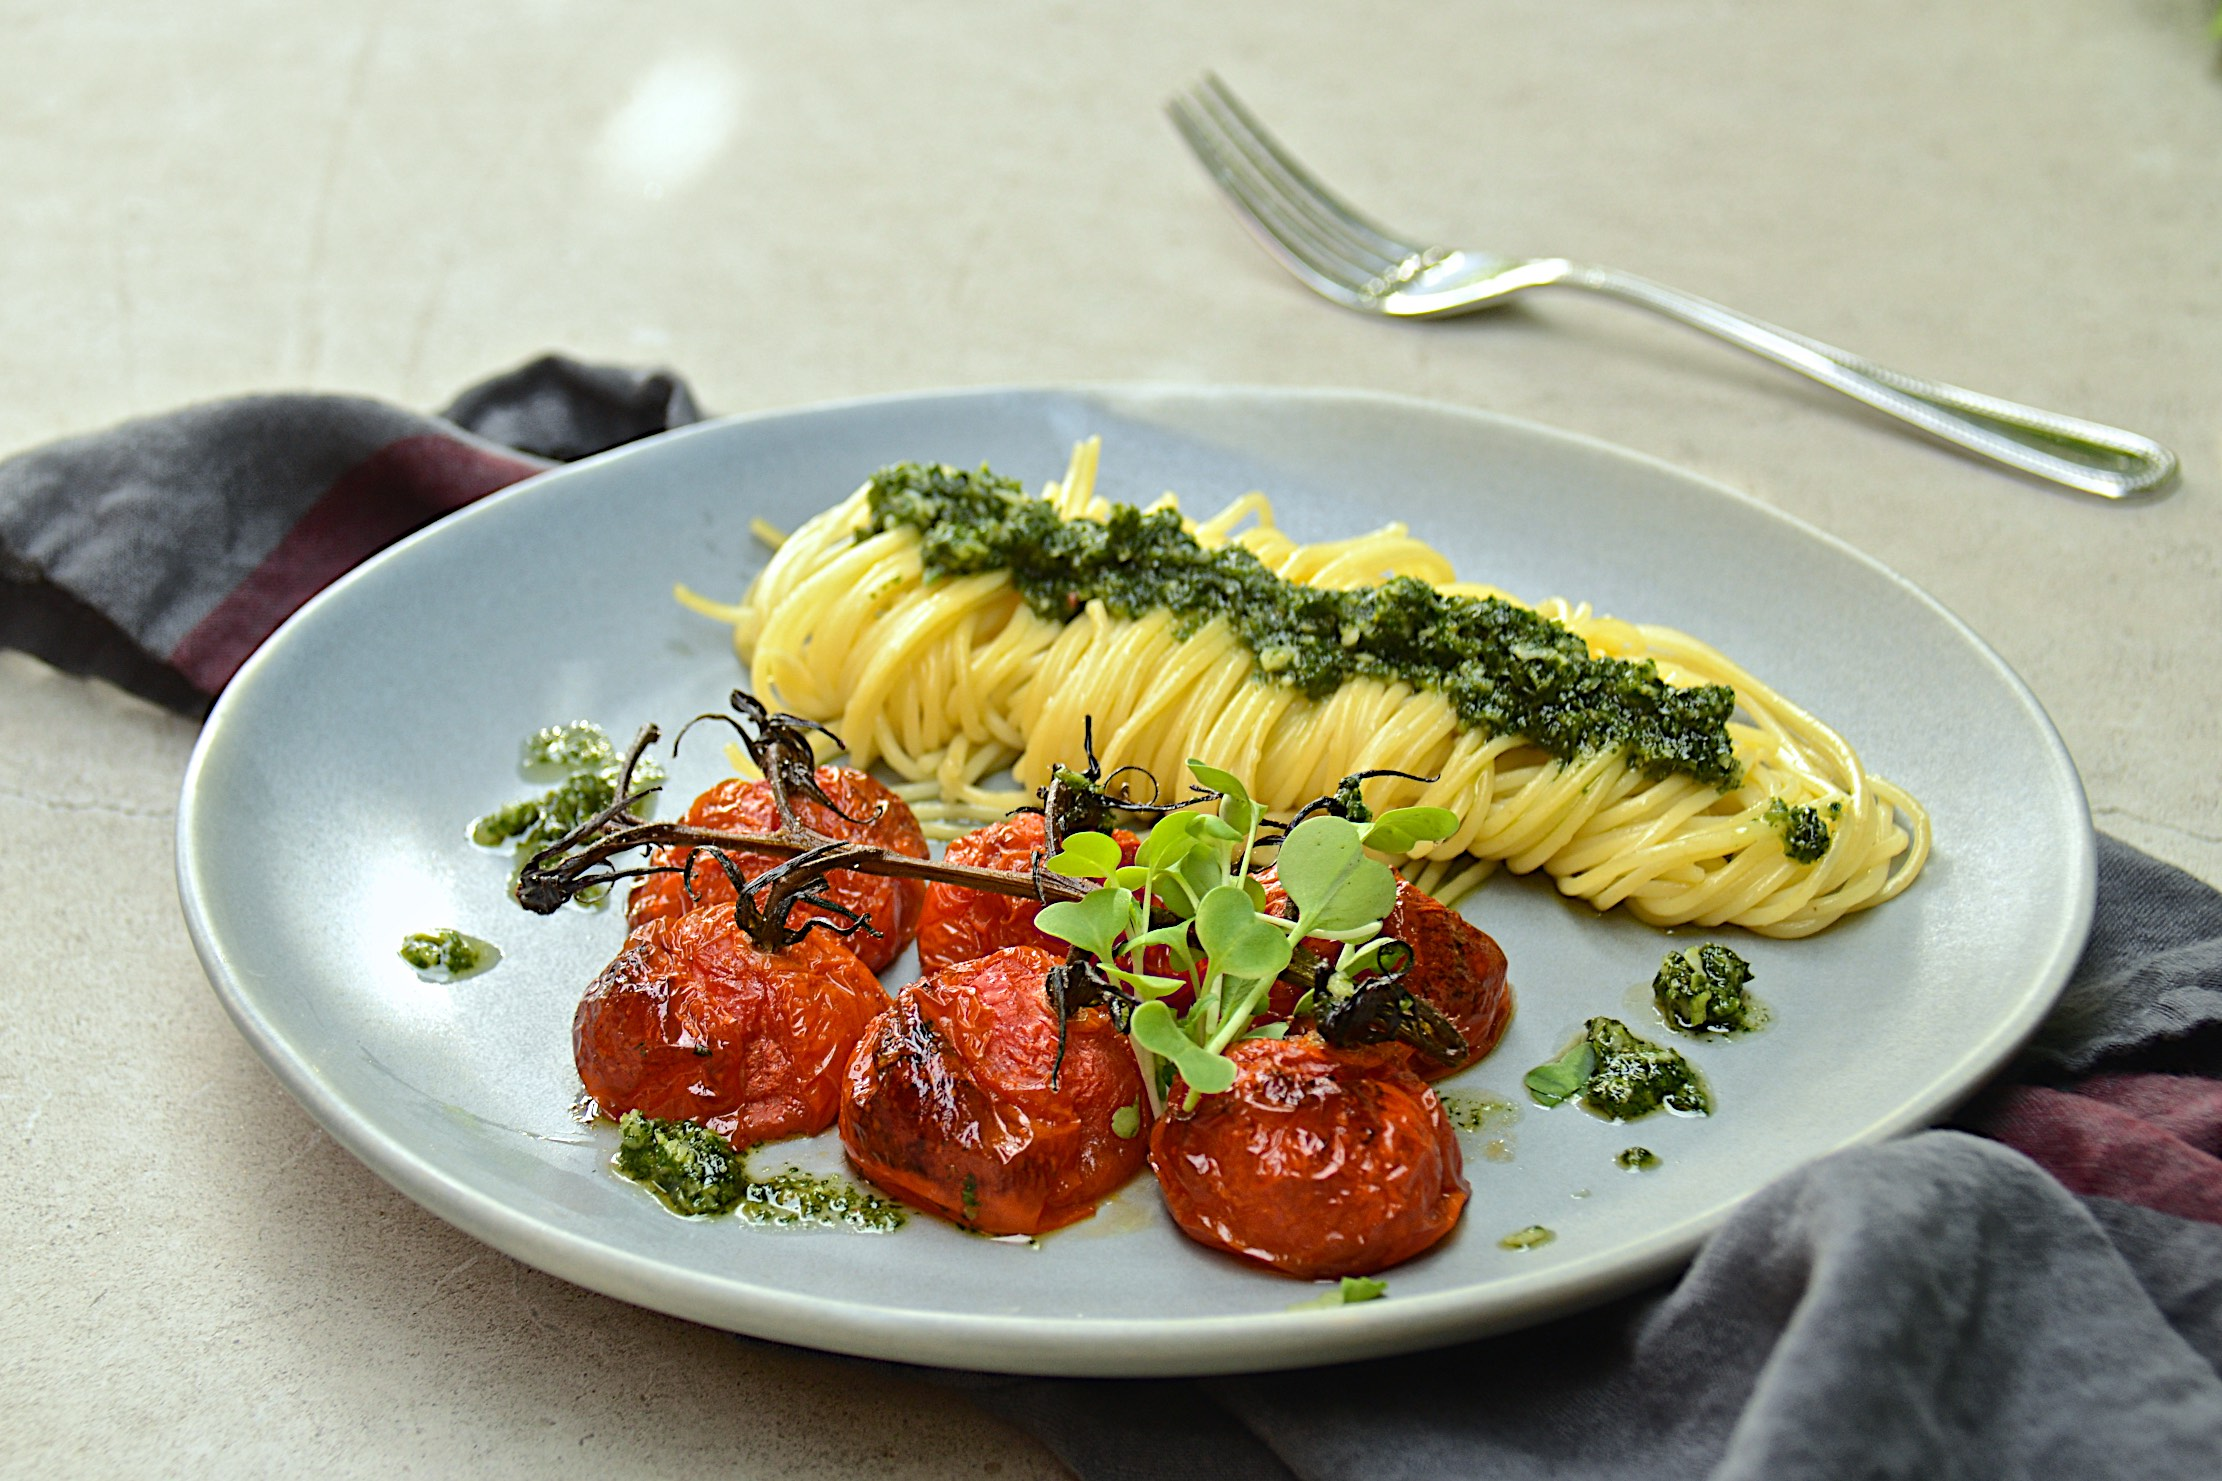 Pasta with pesto and roasted tomatoes on the vine